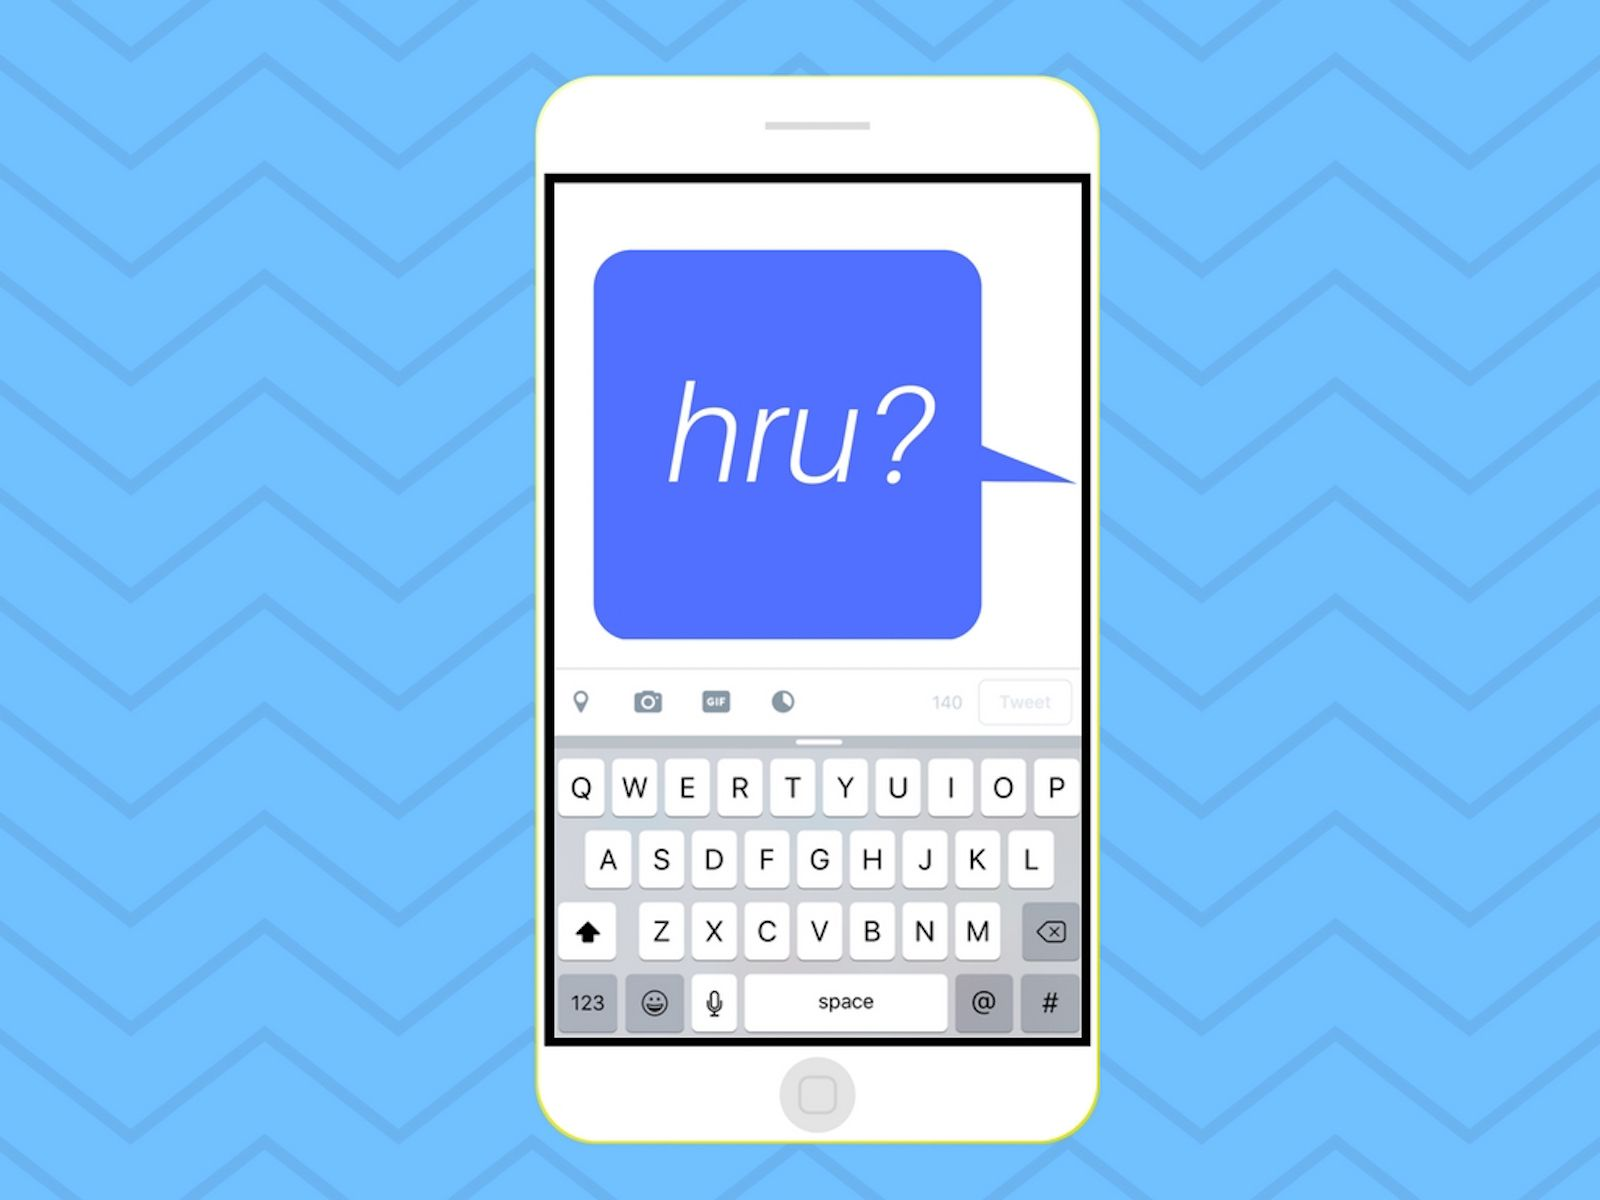 Illustration of HRU in a message bubble on an iPhone.